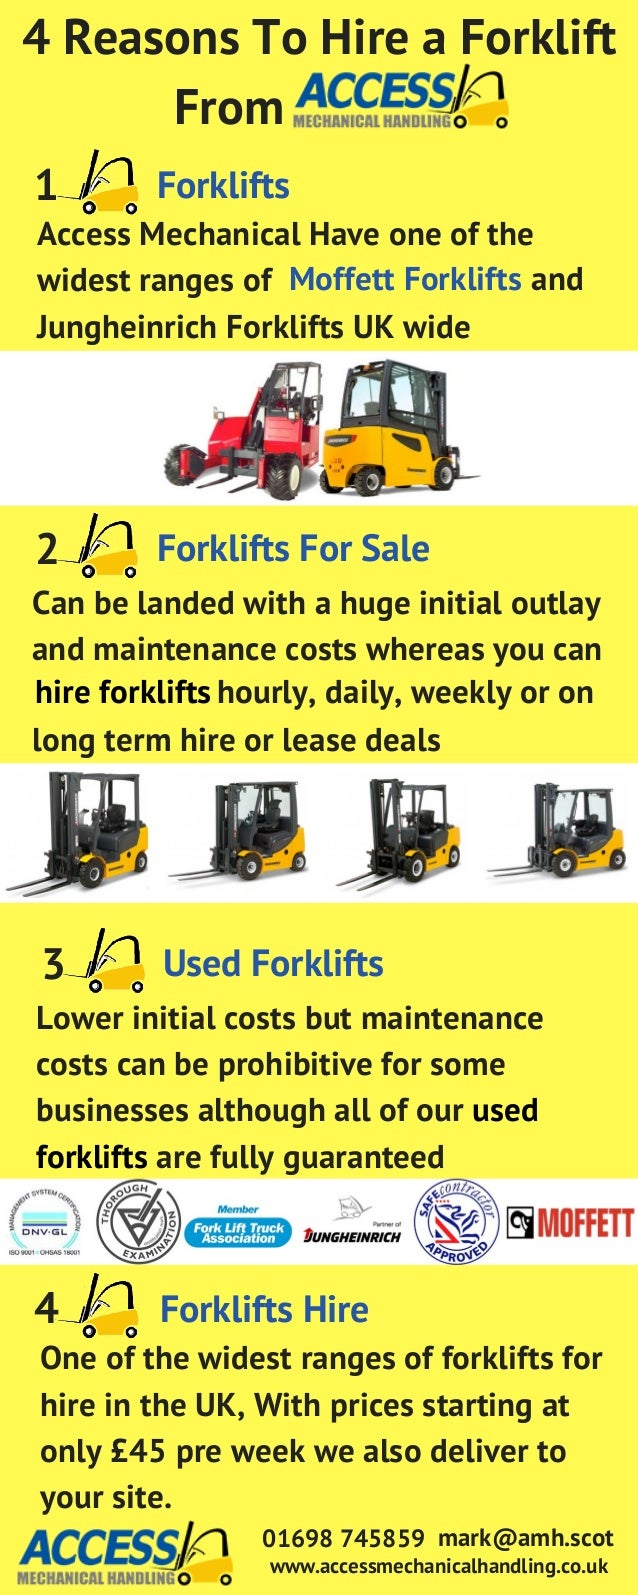 4 Reasons To Hire A Forklift